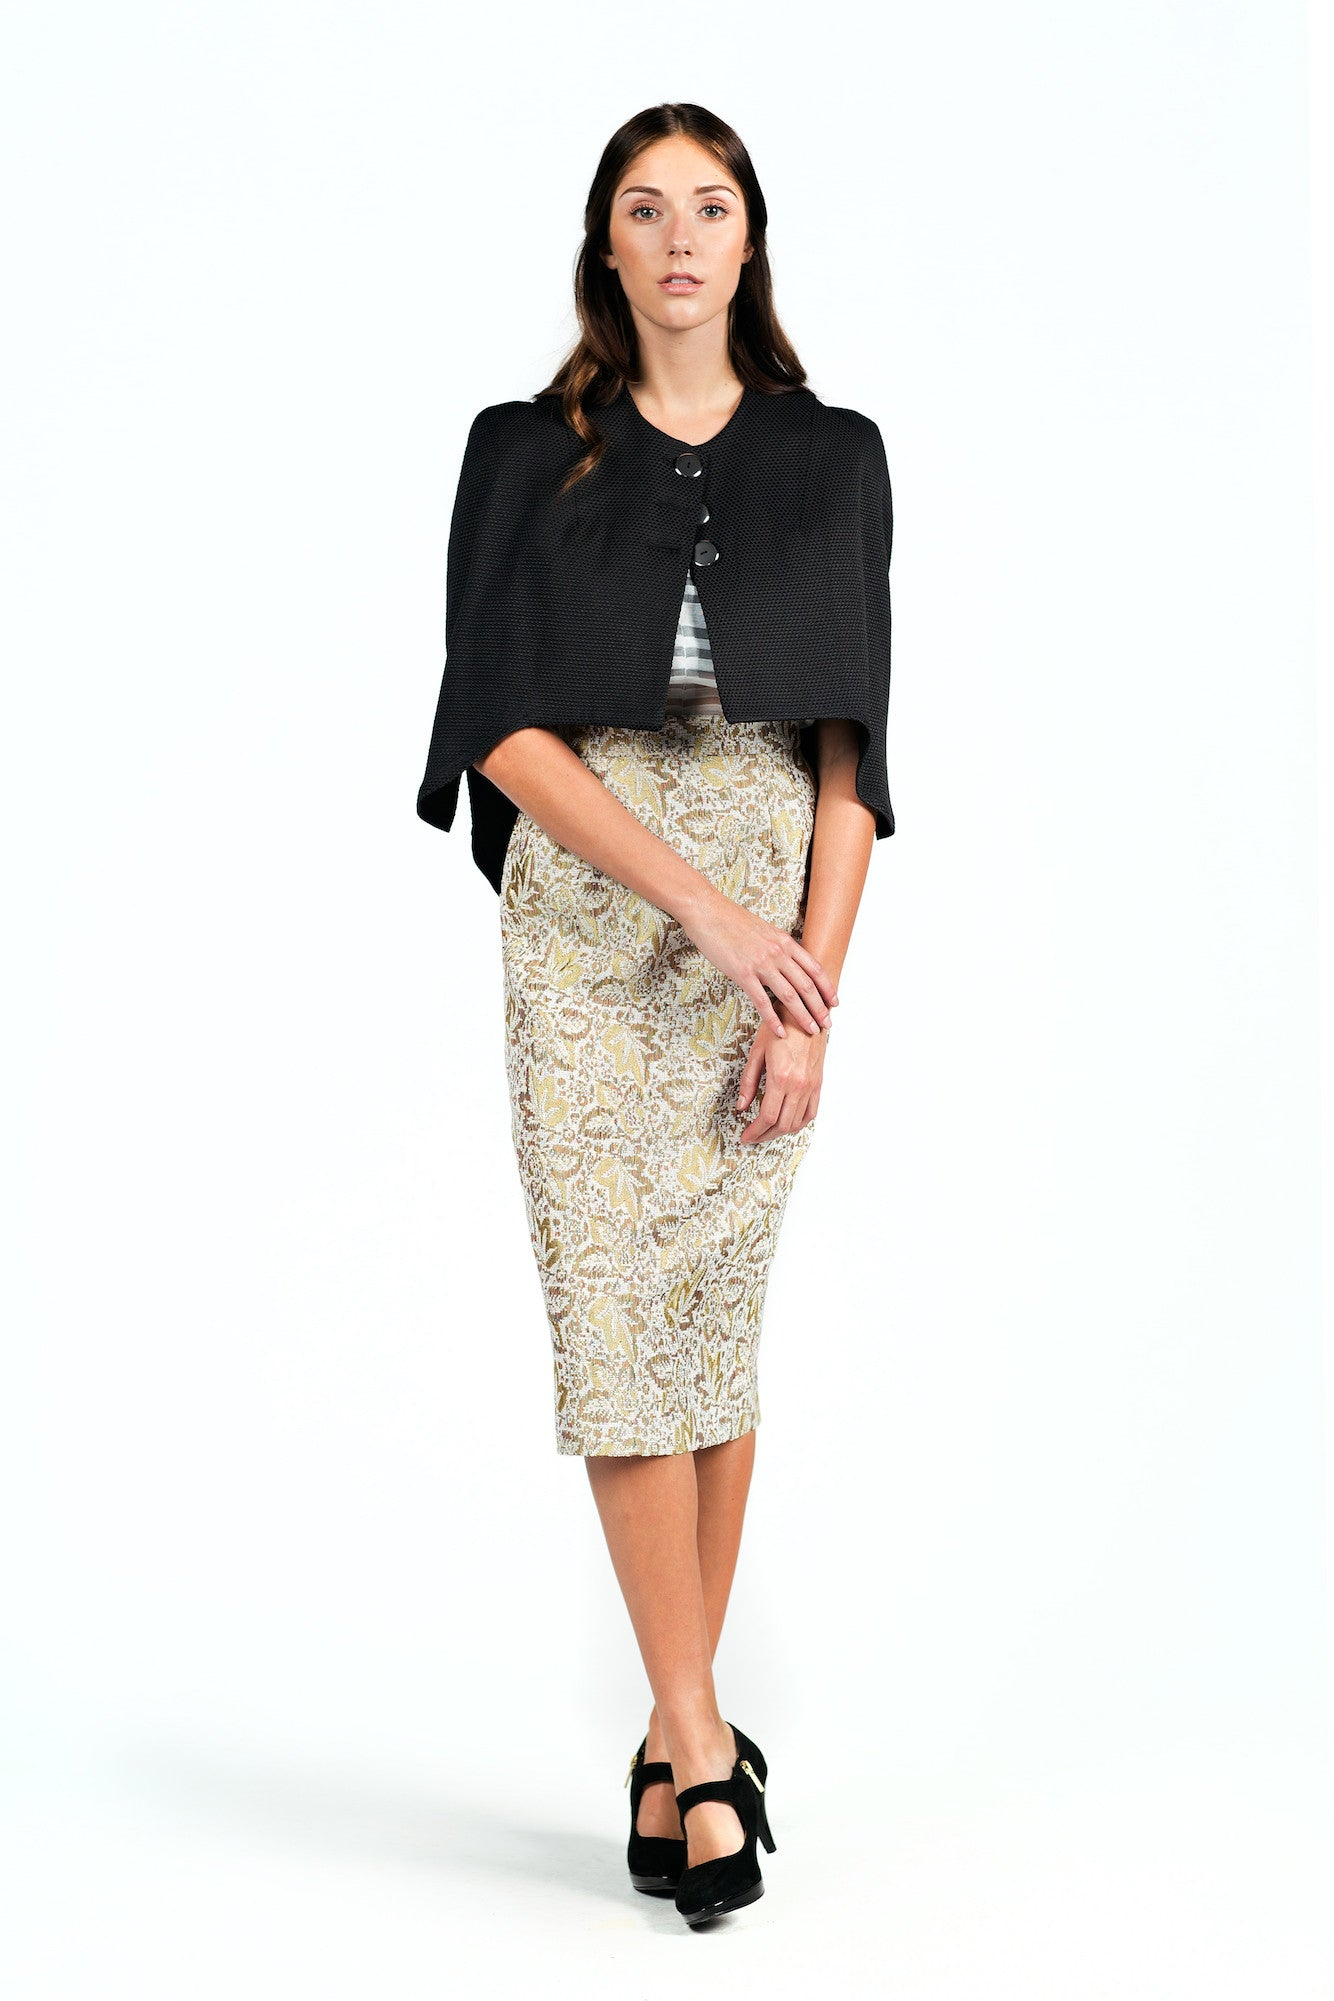 Textured High-waisted Pencil Skirt for All Seasons - Steve Guthrie - 2